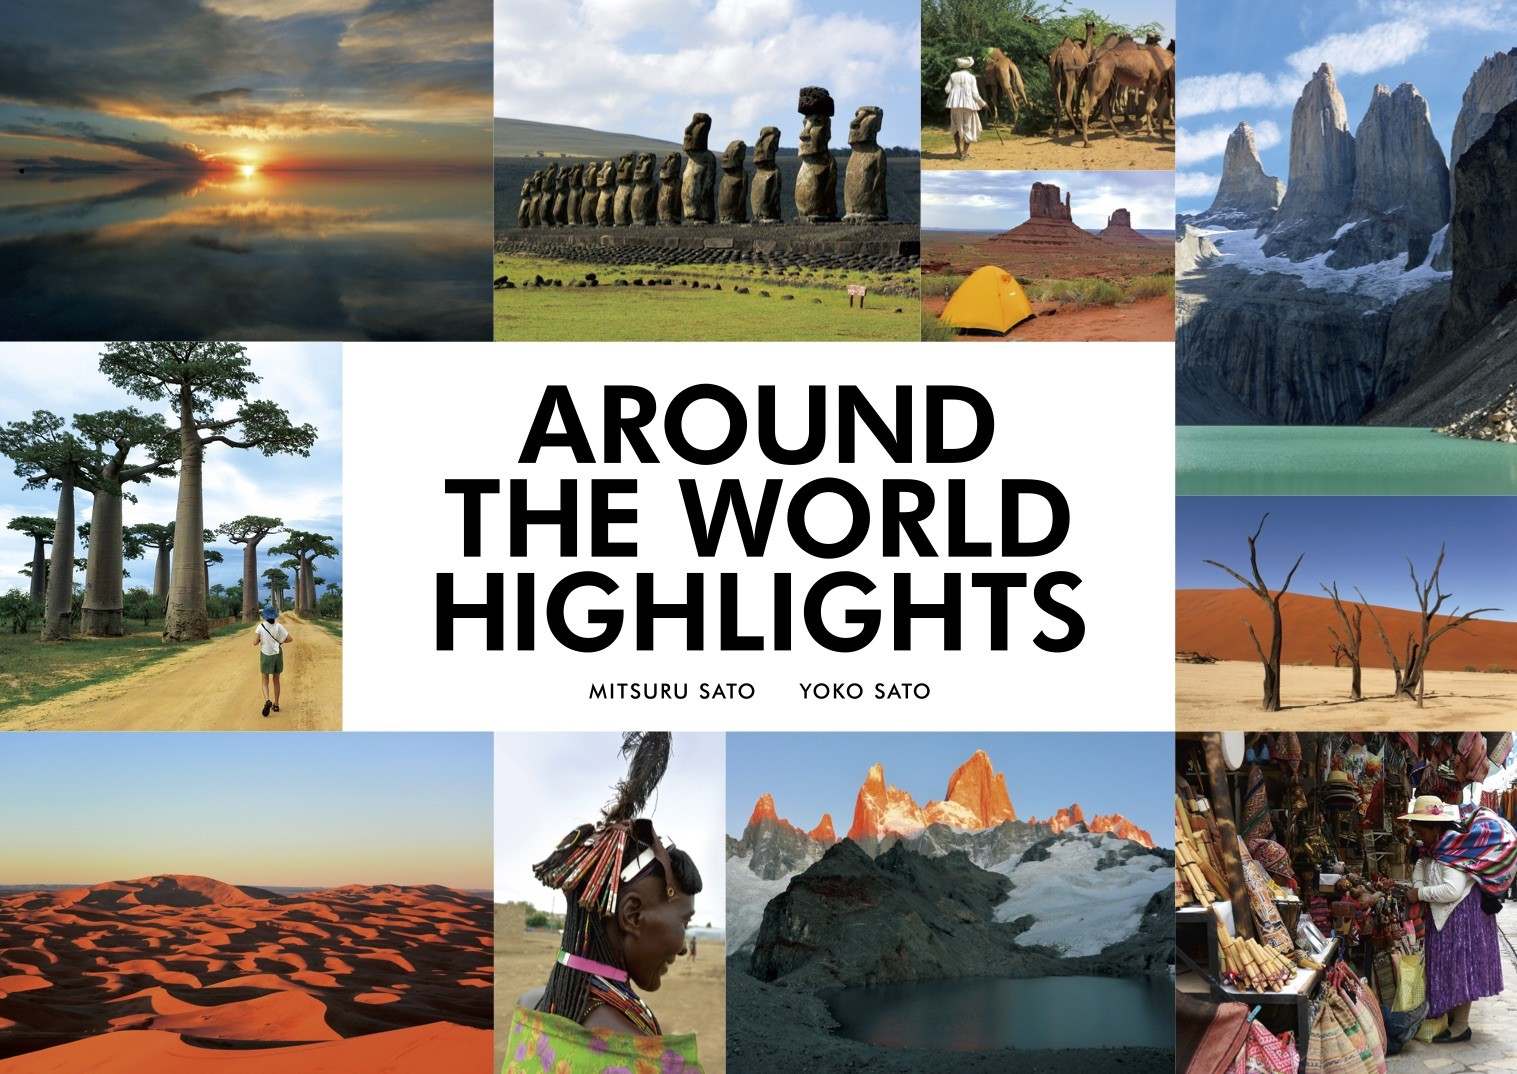 AROUND THE WORLD HIGHLIGHTS